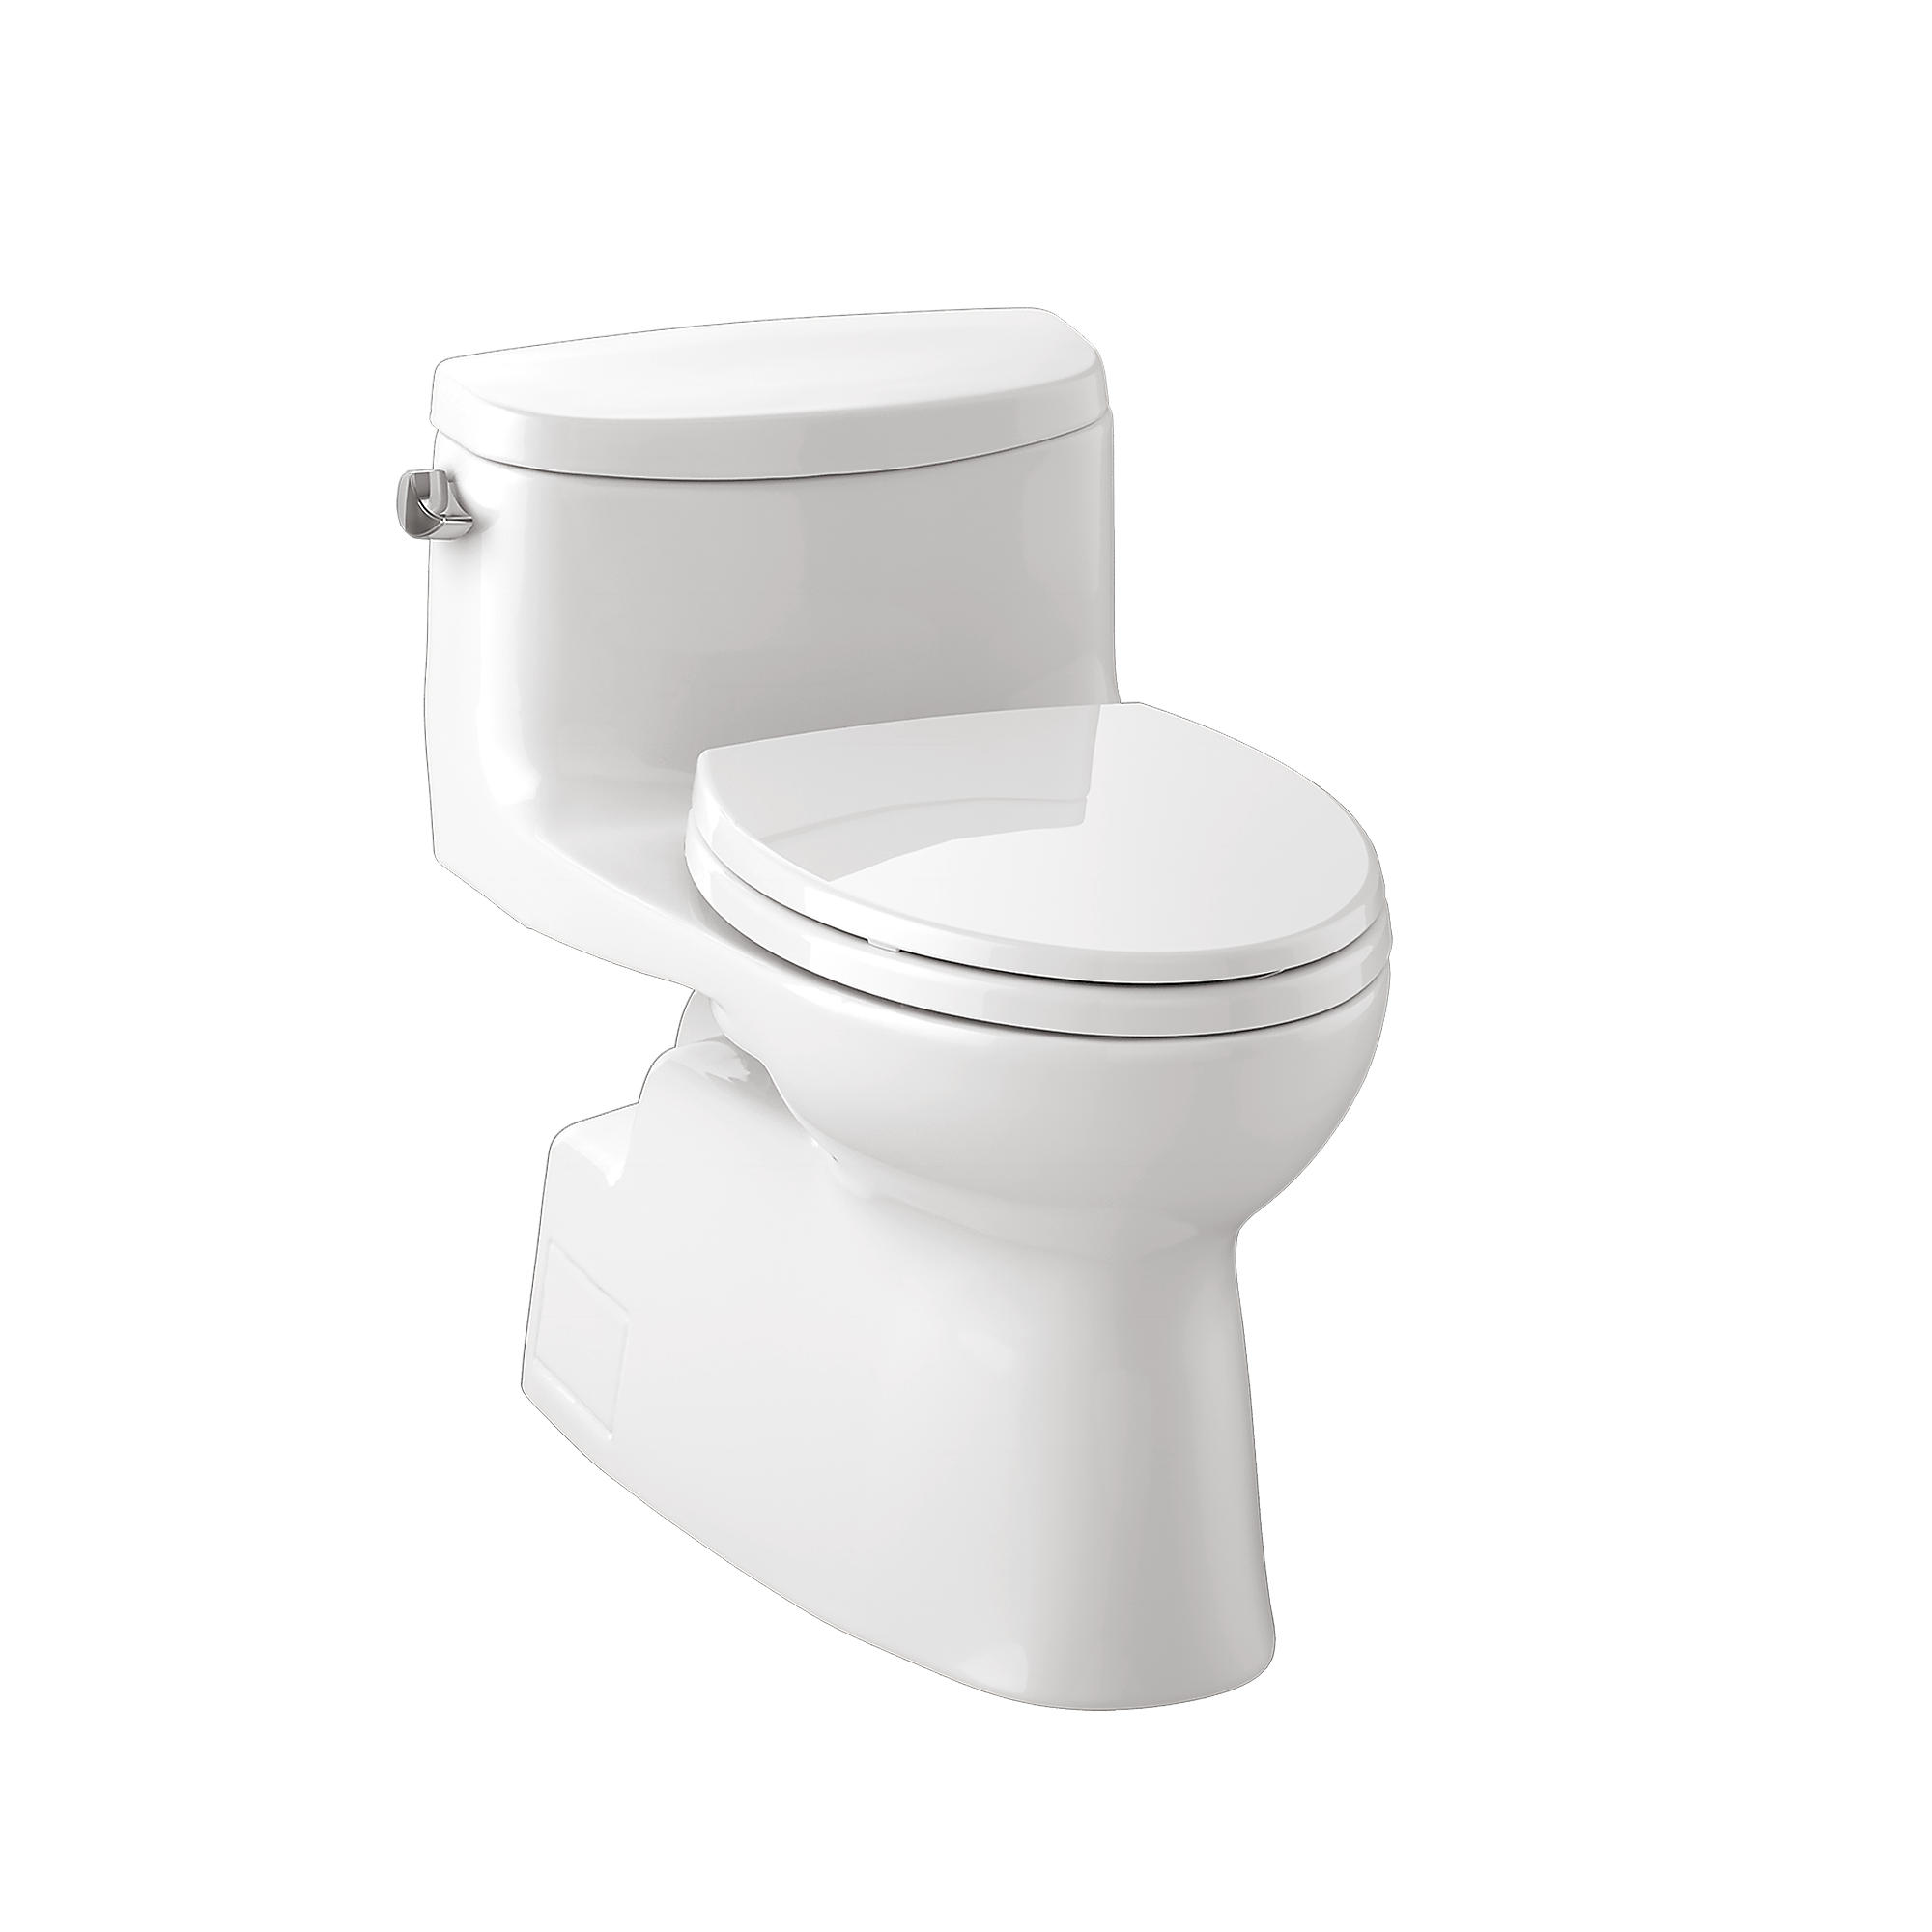 Ms644114cefg 01 carolina  ii one piece toilet  elongated bowl   1 28 gpf 0